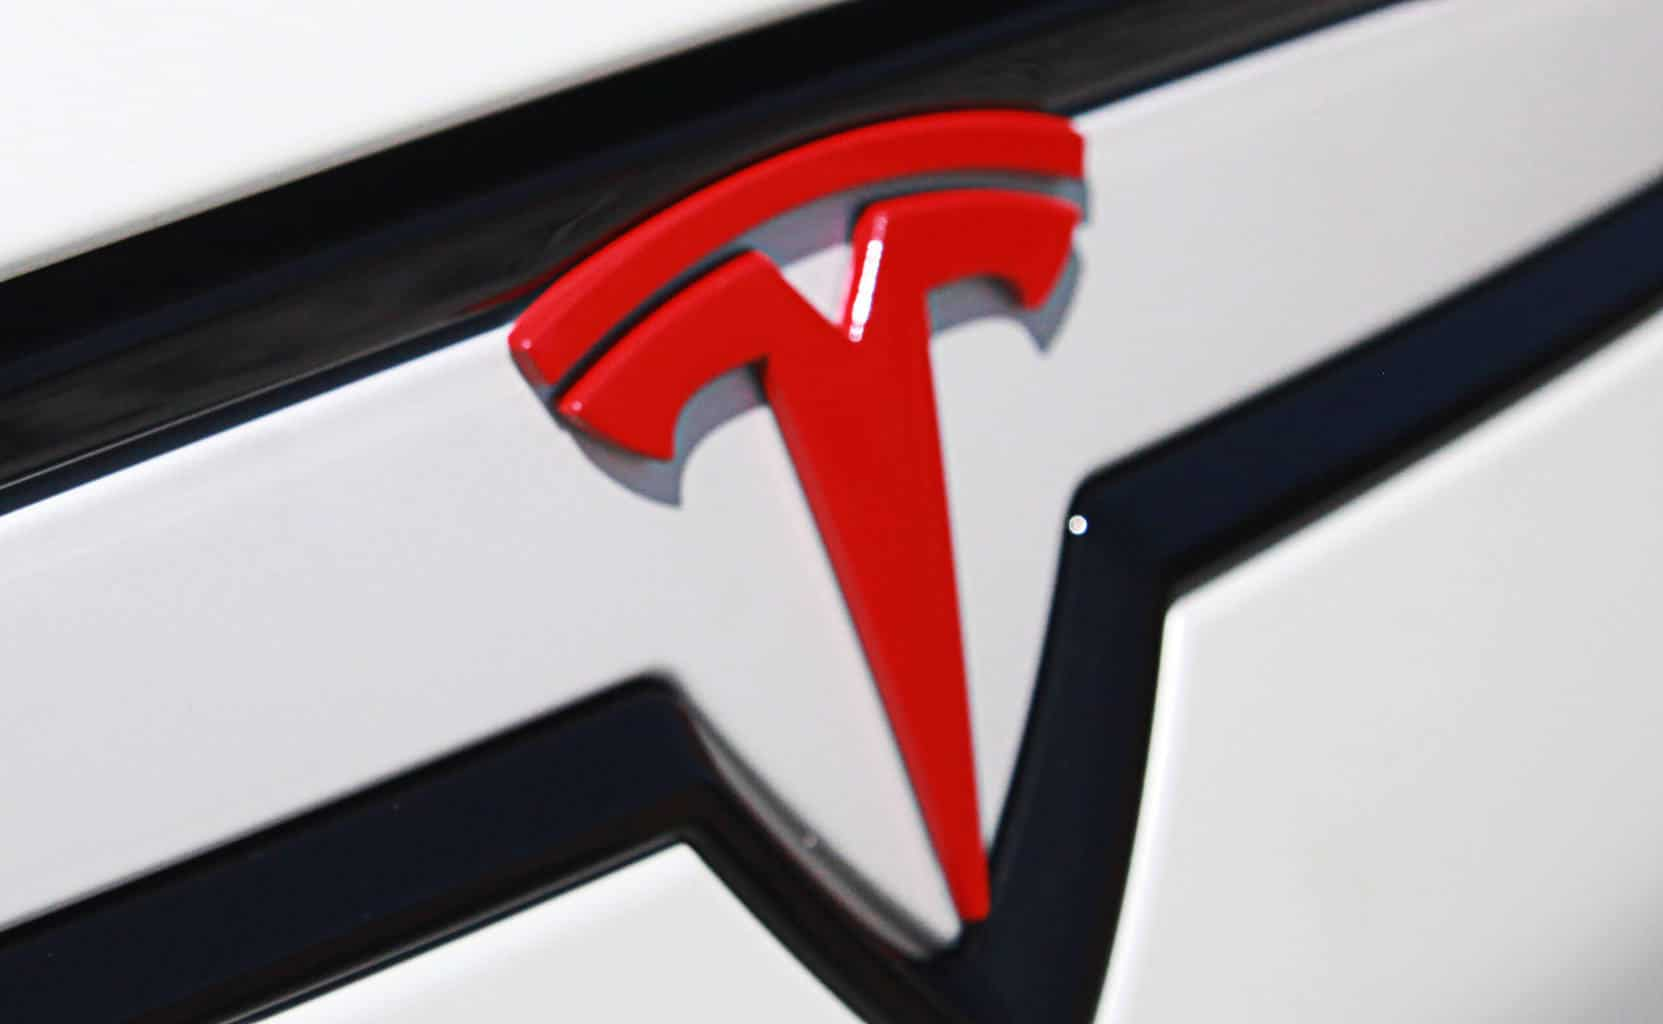 Tesla's Insurance Data Collection Will Depend on State Laws